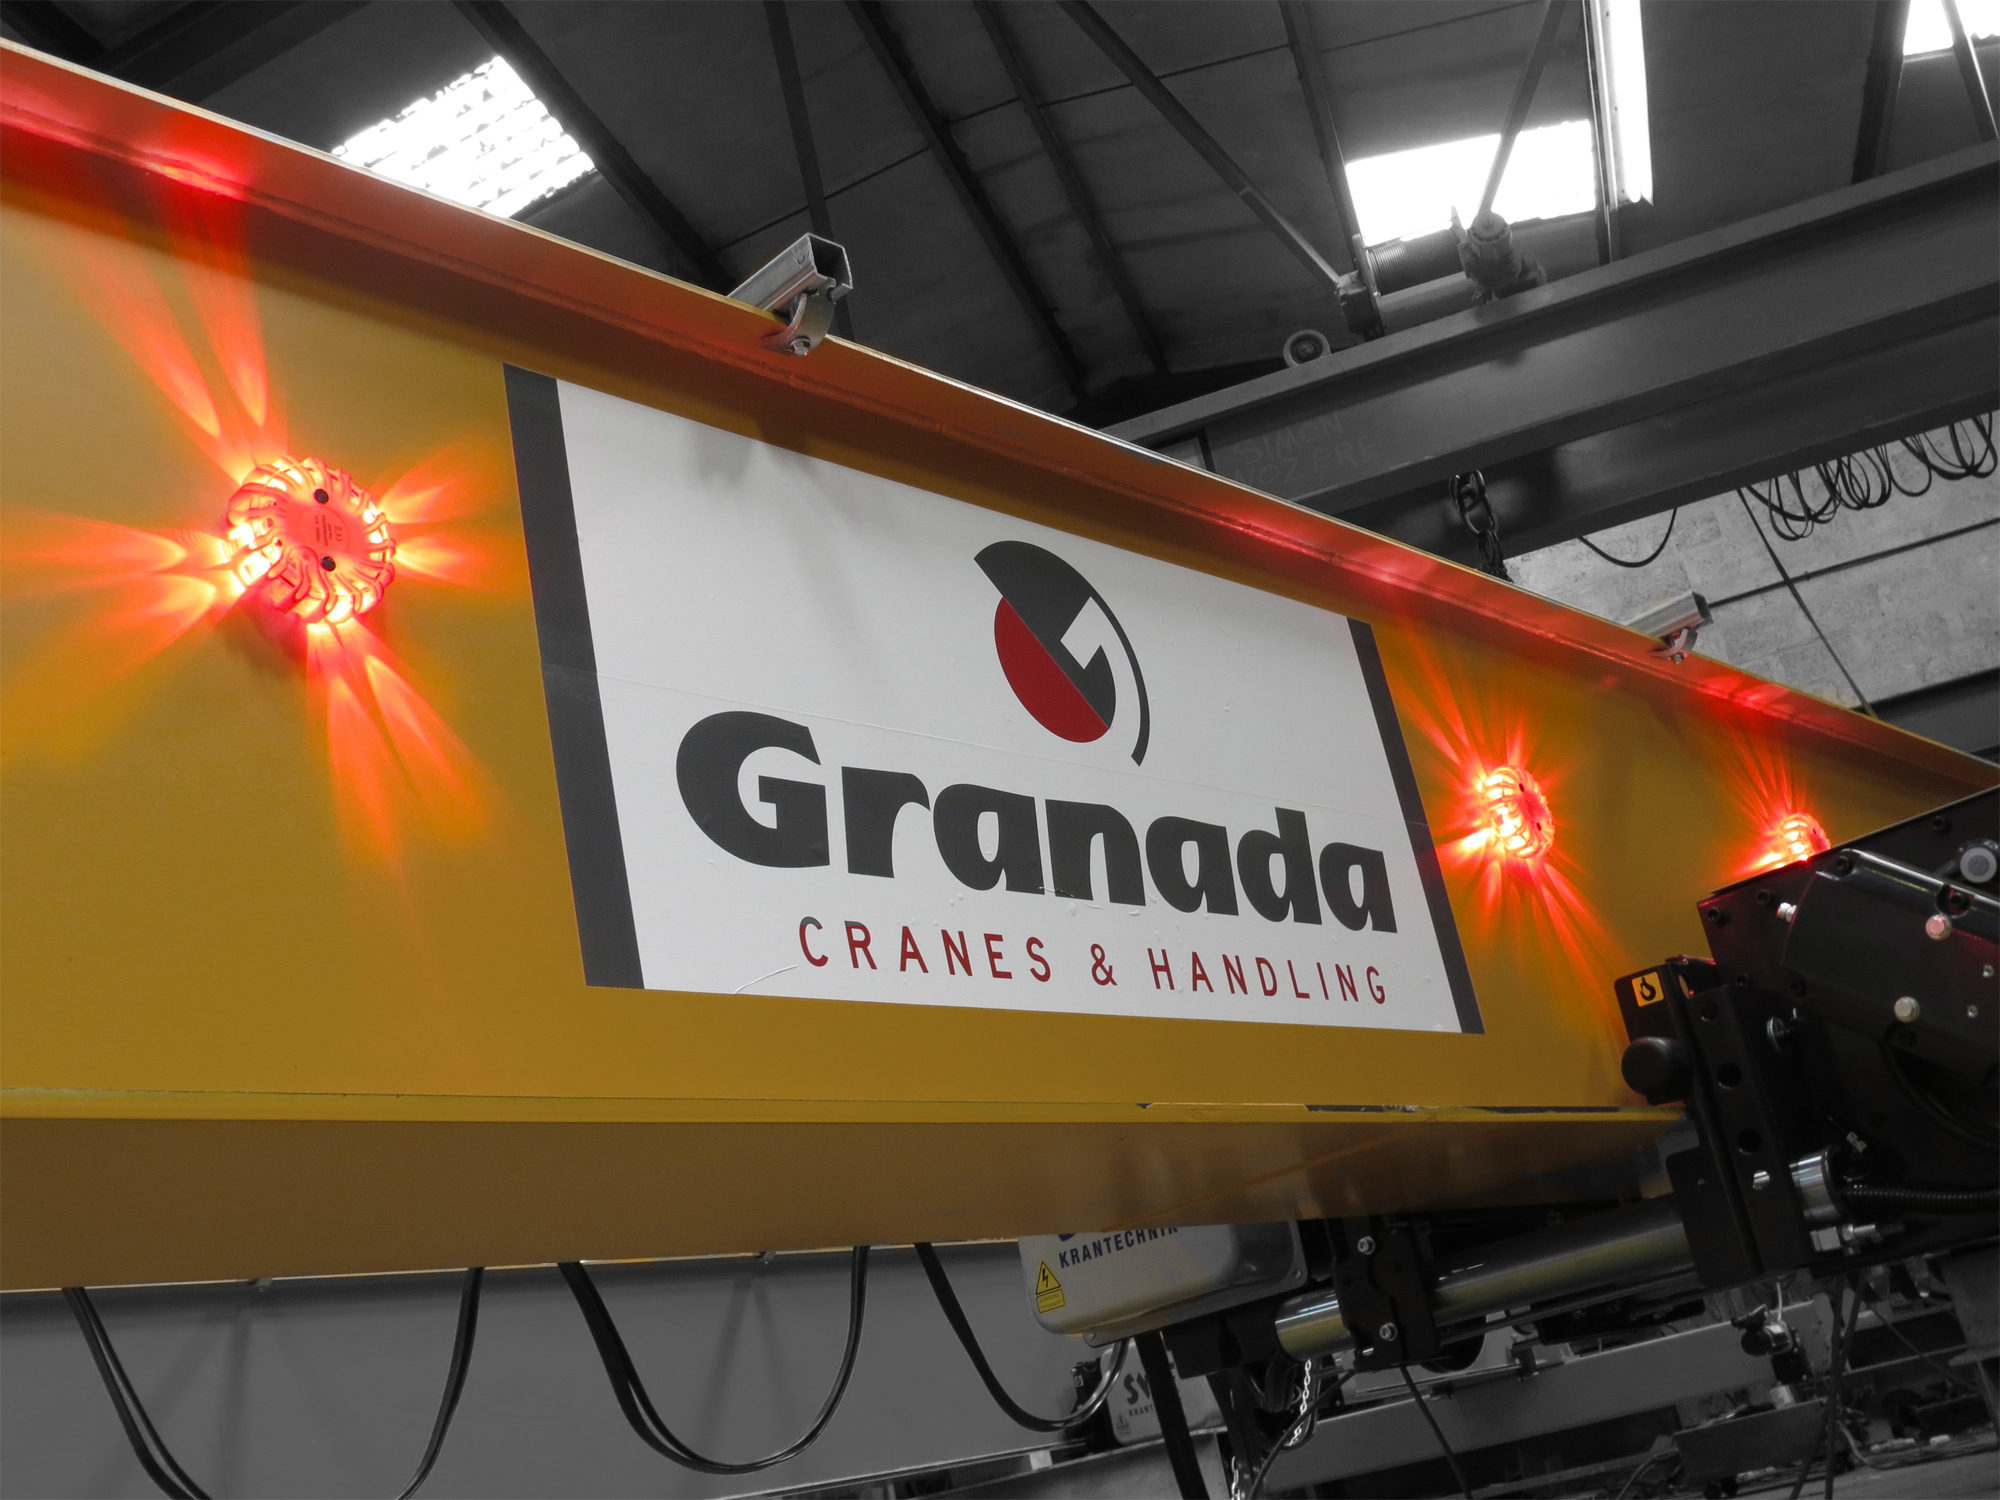 Overhead Crane Lights Led : Successful trial of high visibility site warning beacons granada cranes and handling